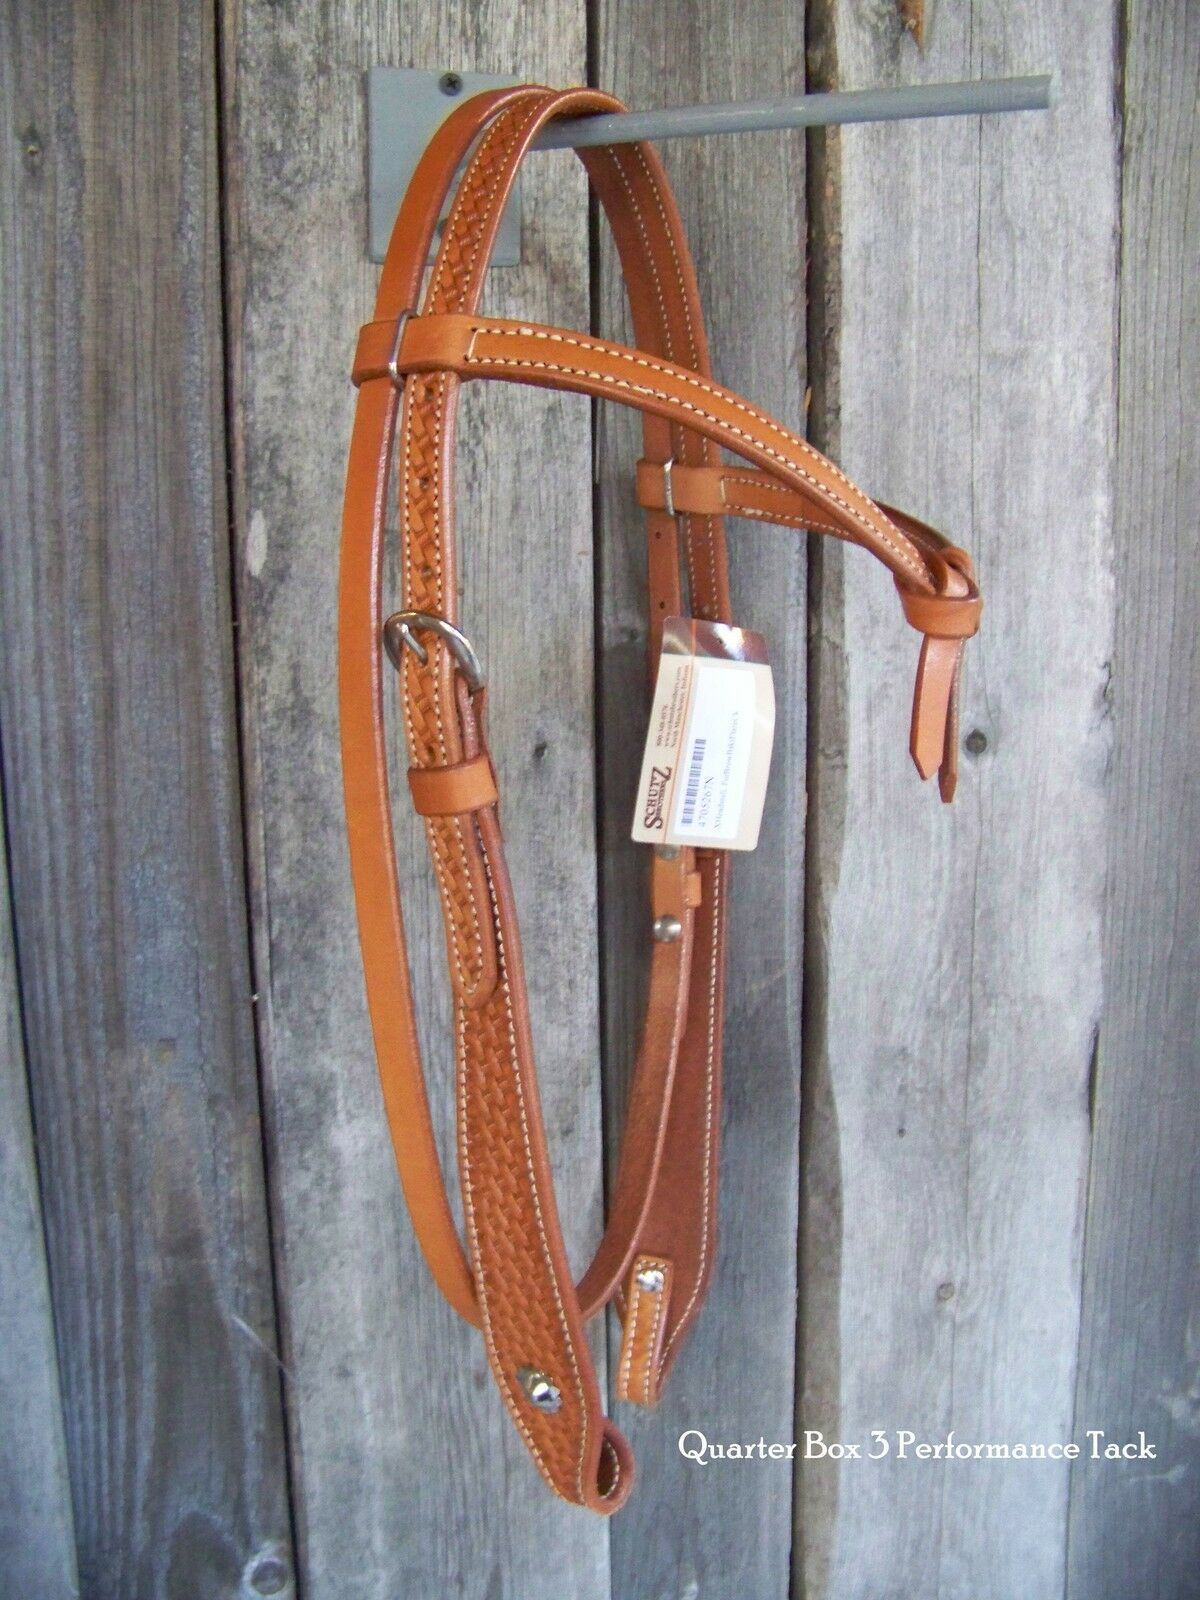 Headstall - Futurity Knot with Basketweave and Flare Cheek